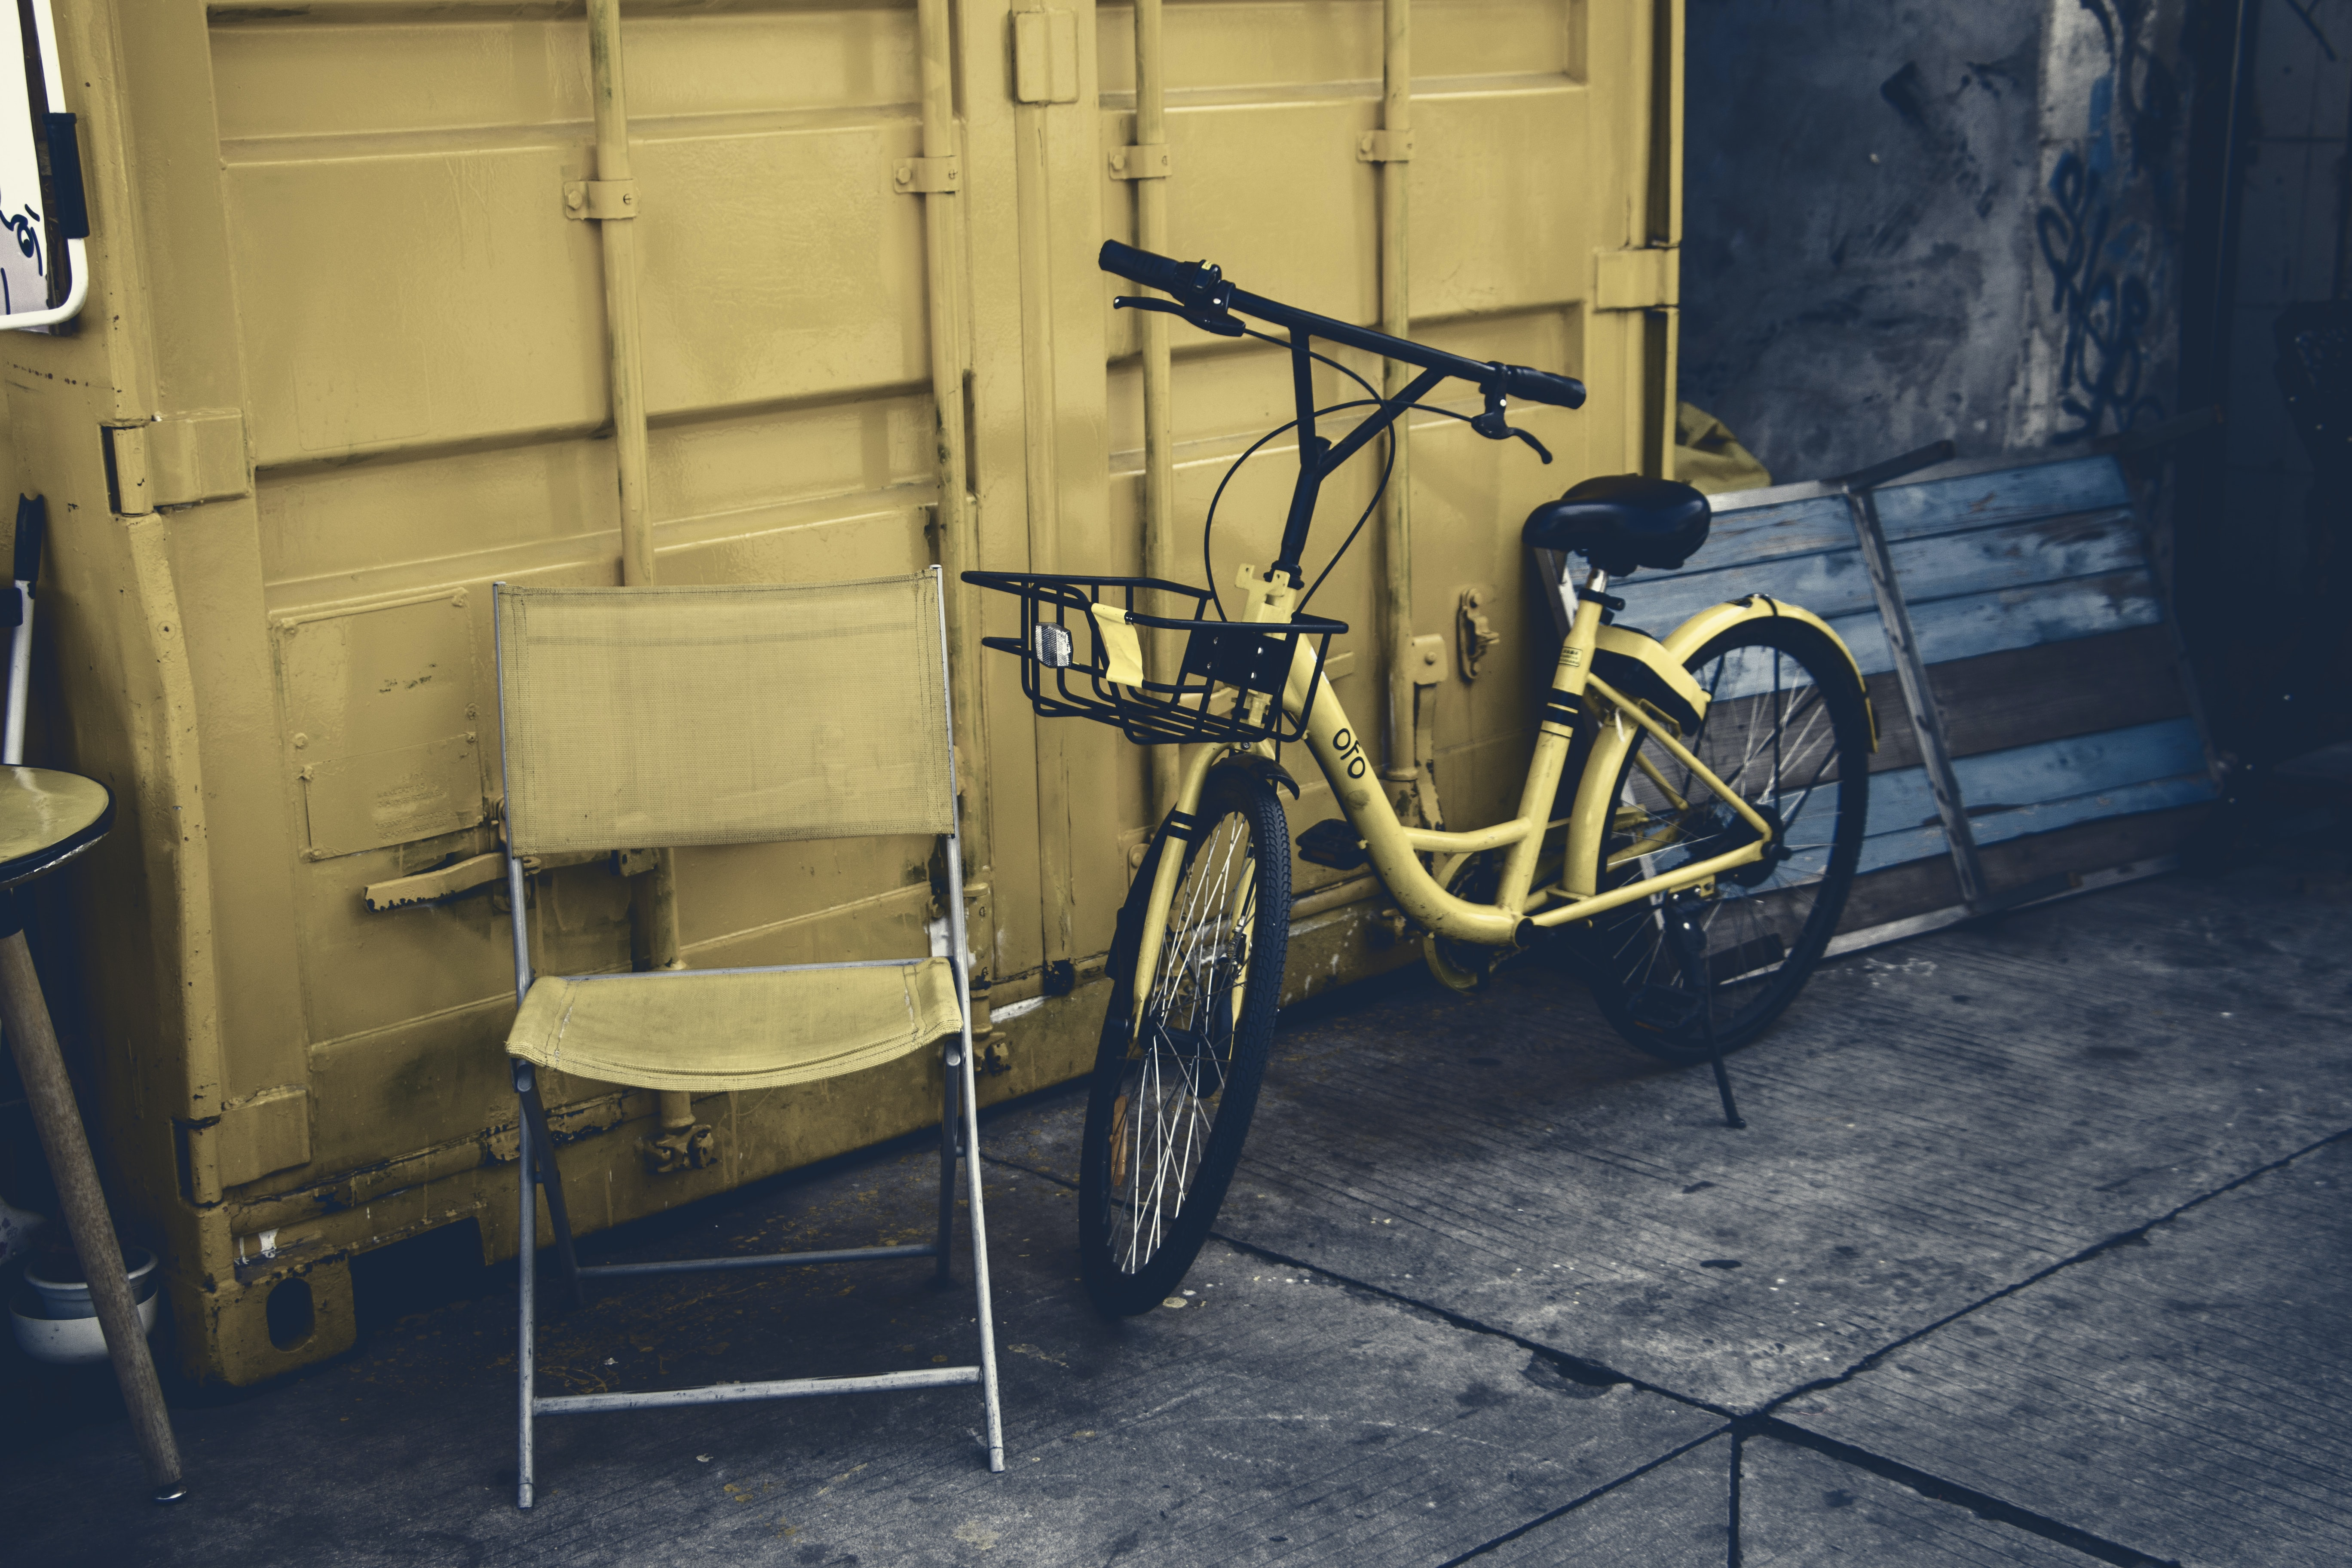 yellow city bike leaning on wall